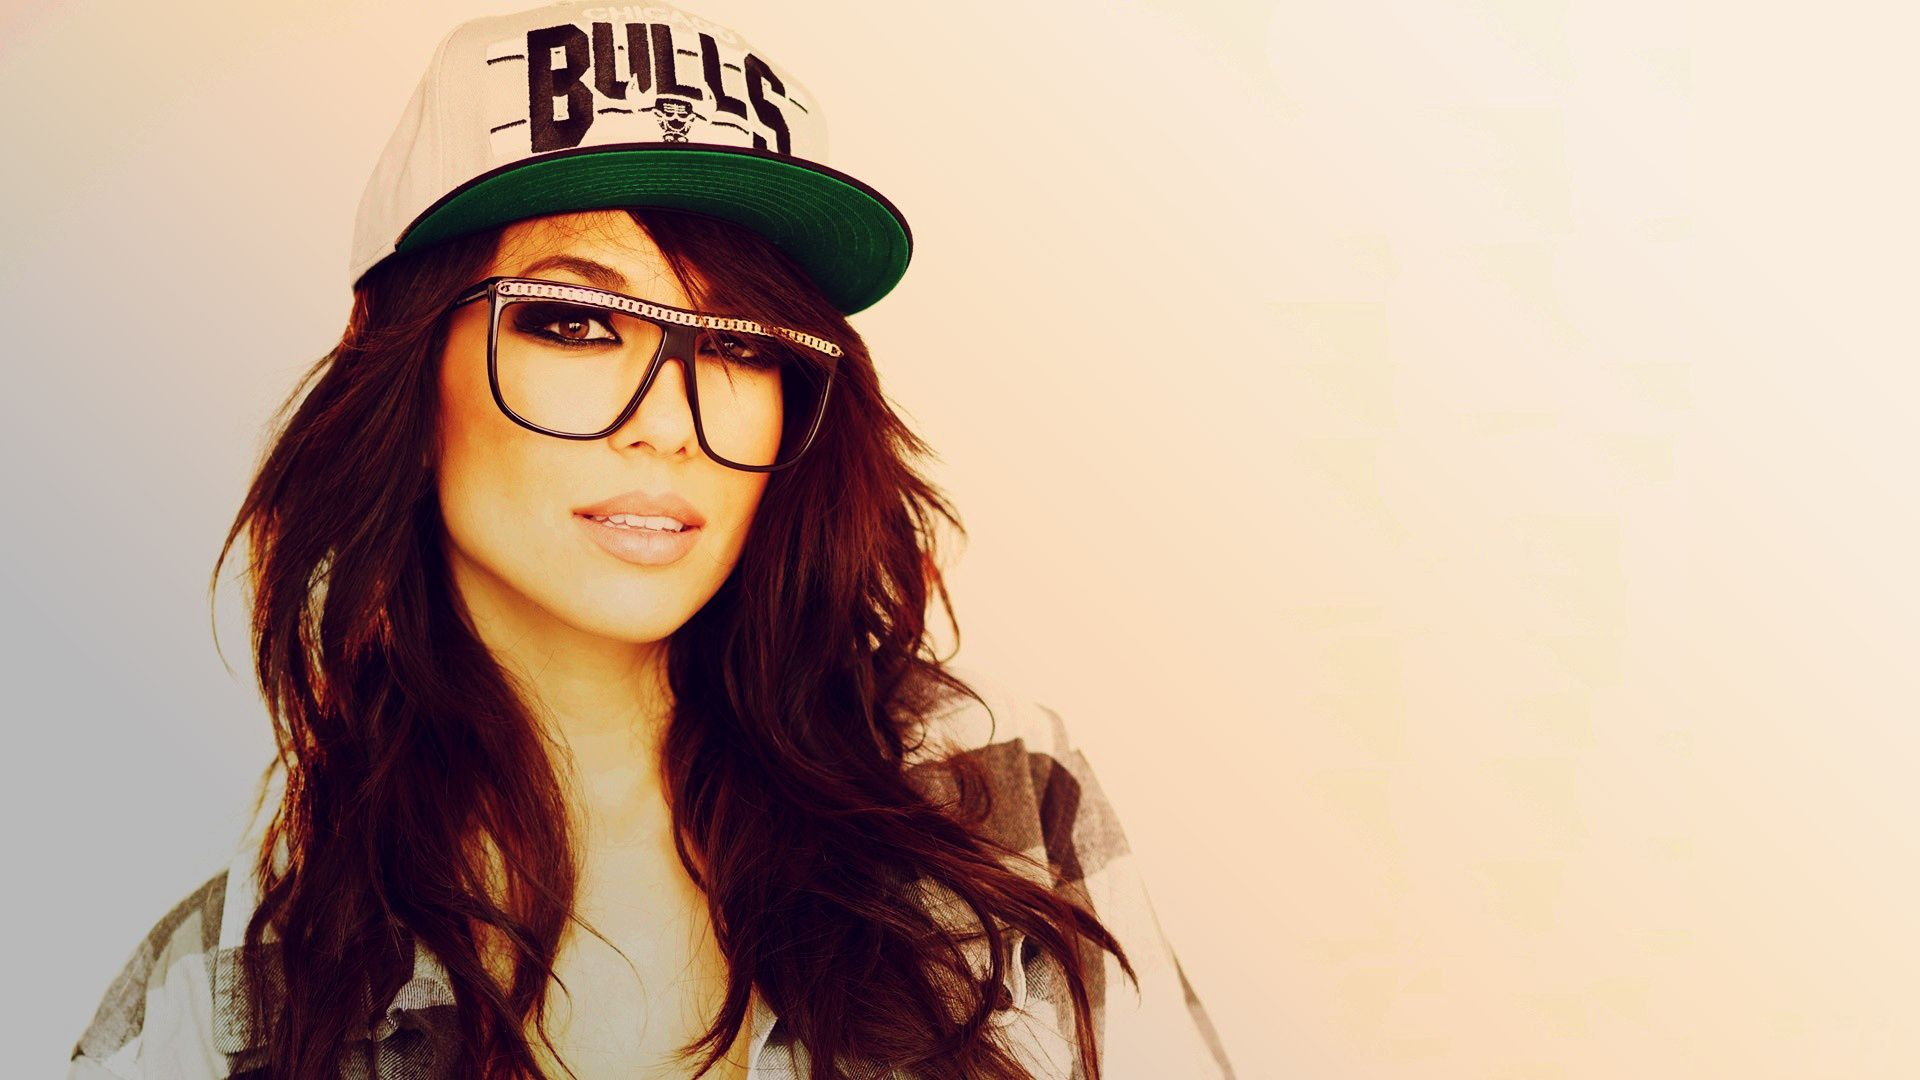 1920x1080 Swag Girls Wallpapers High Quality | Download Free